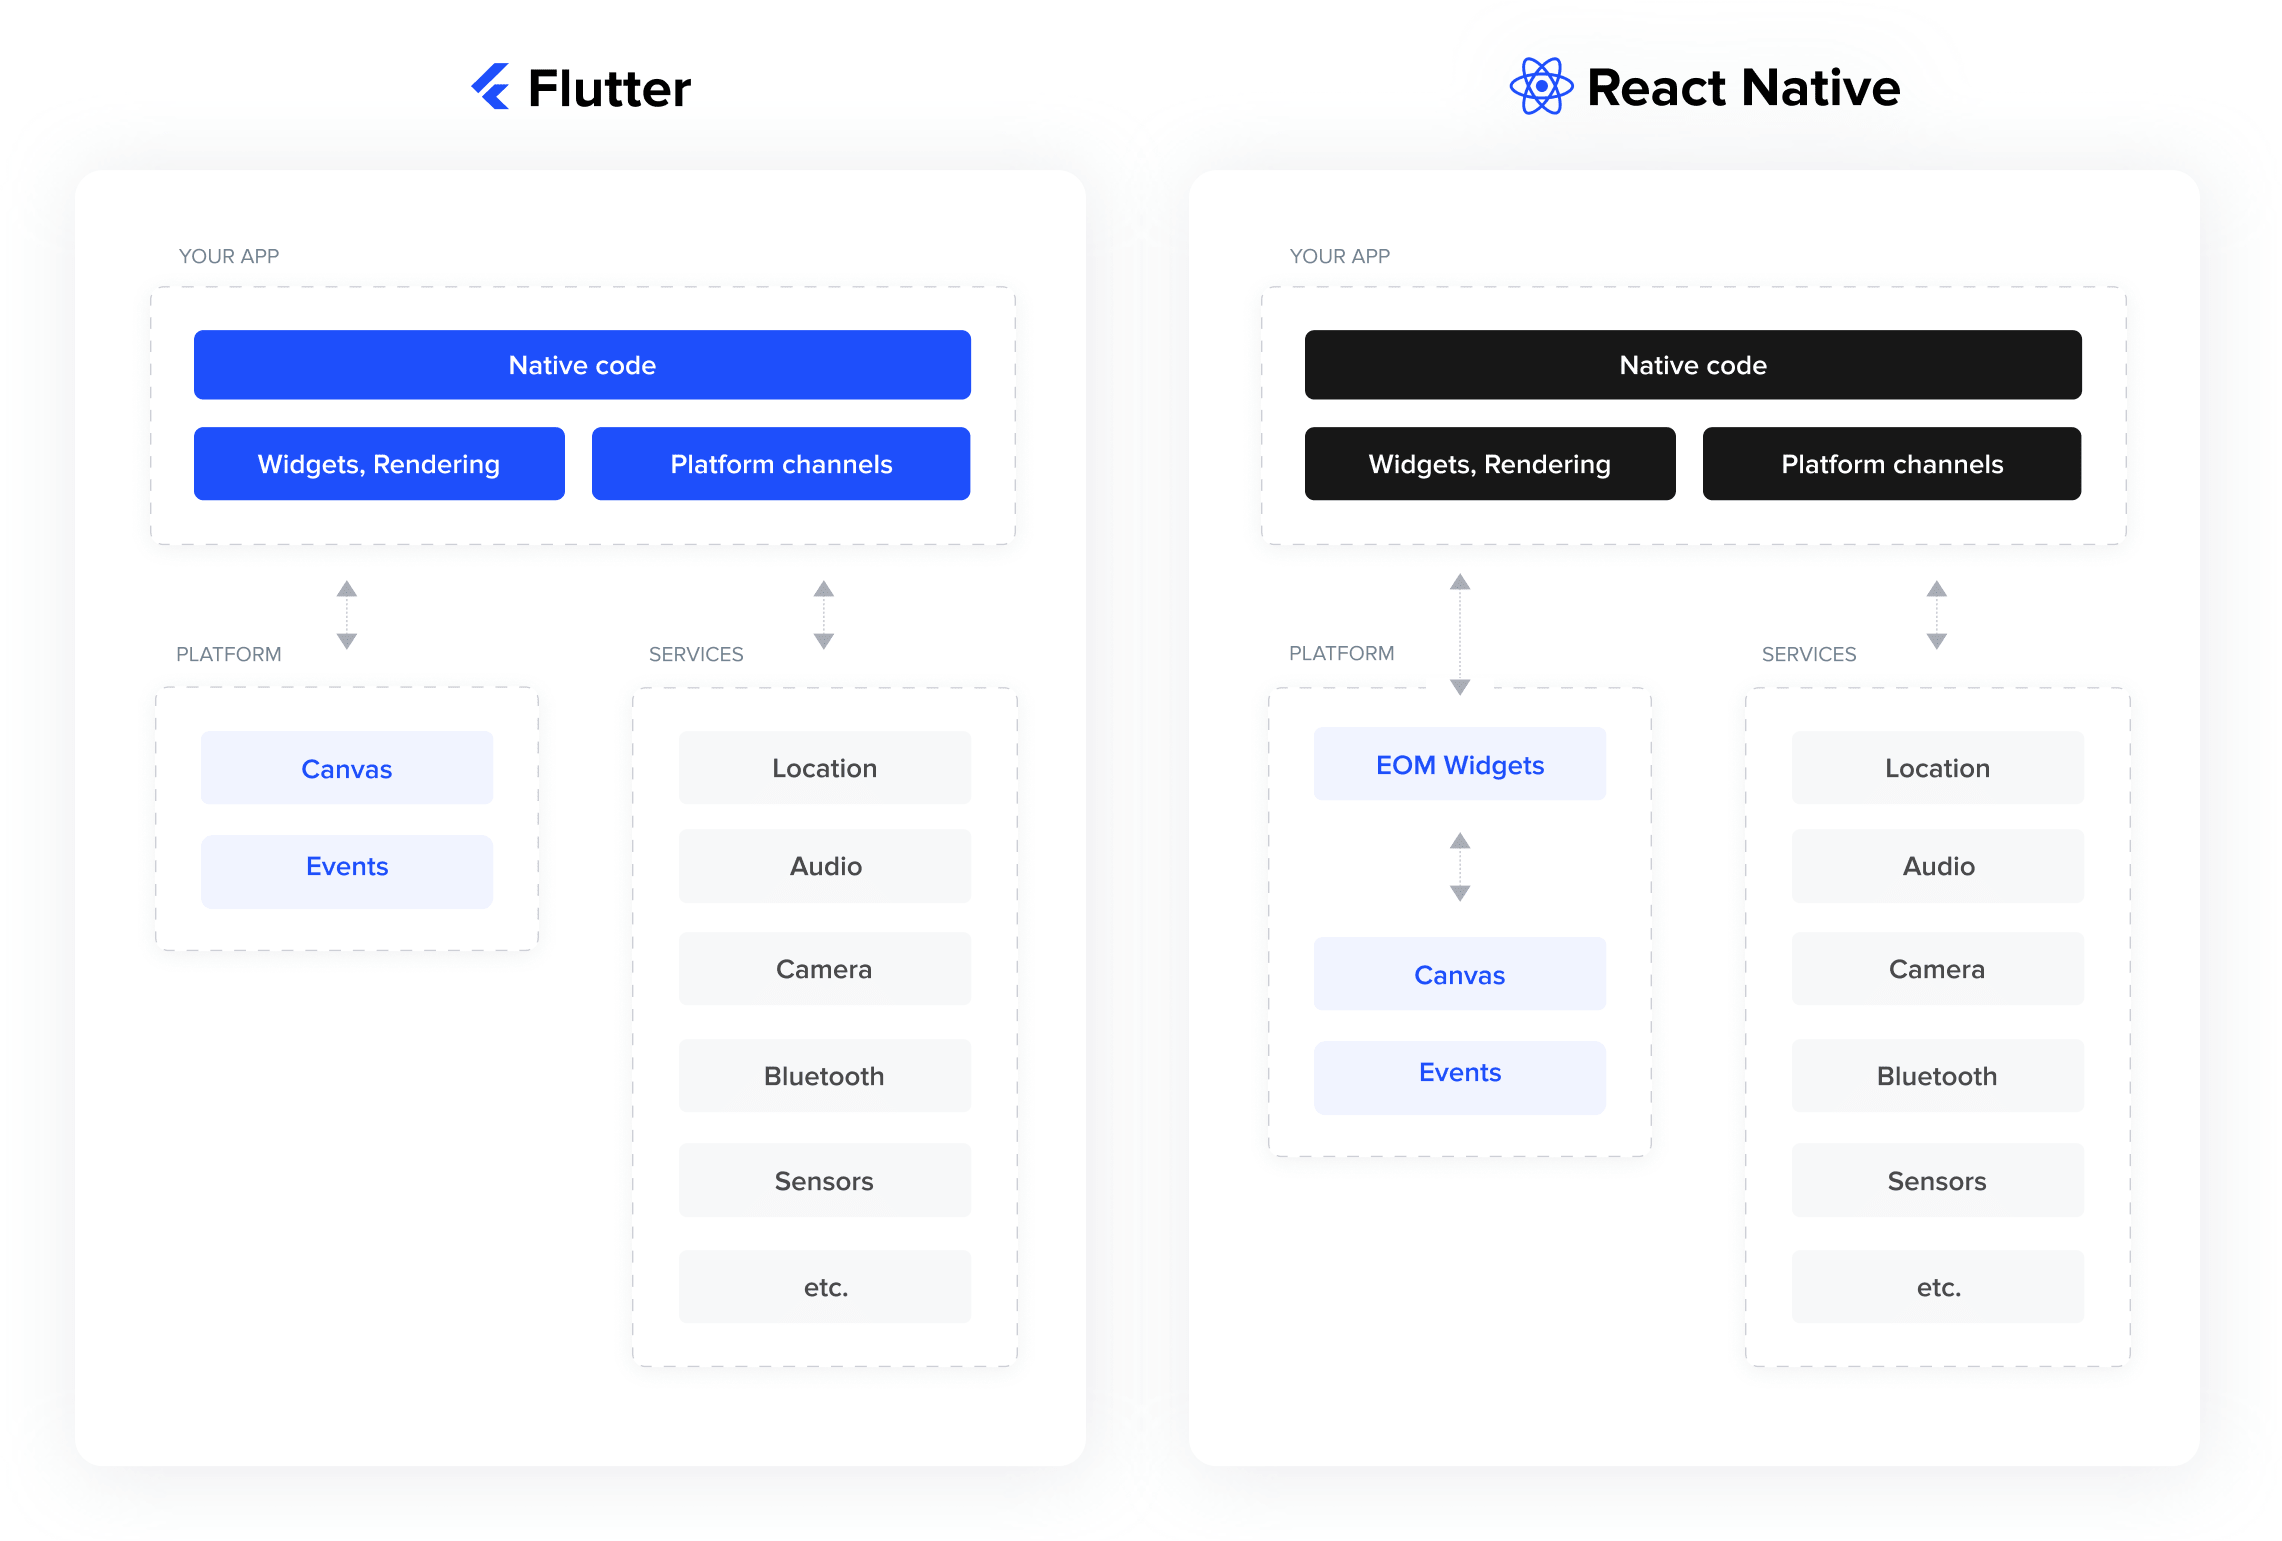 React Native vs Flutter arcitecture